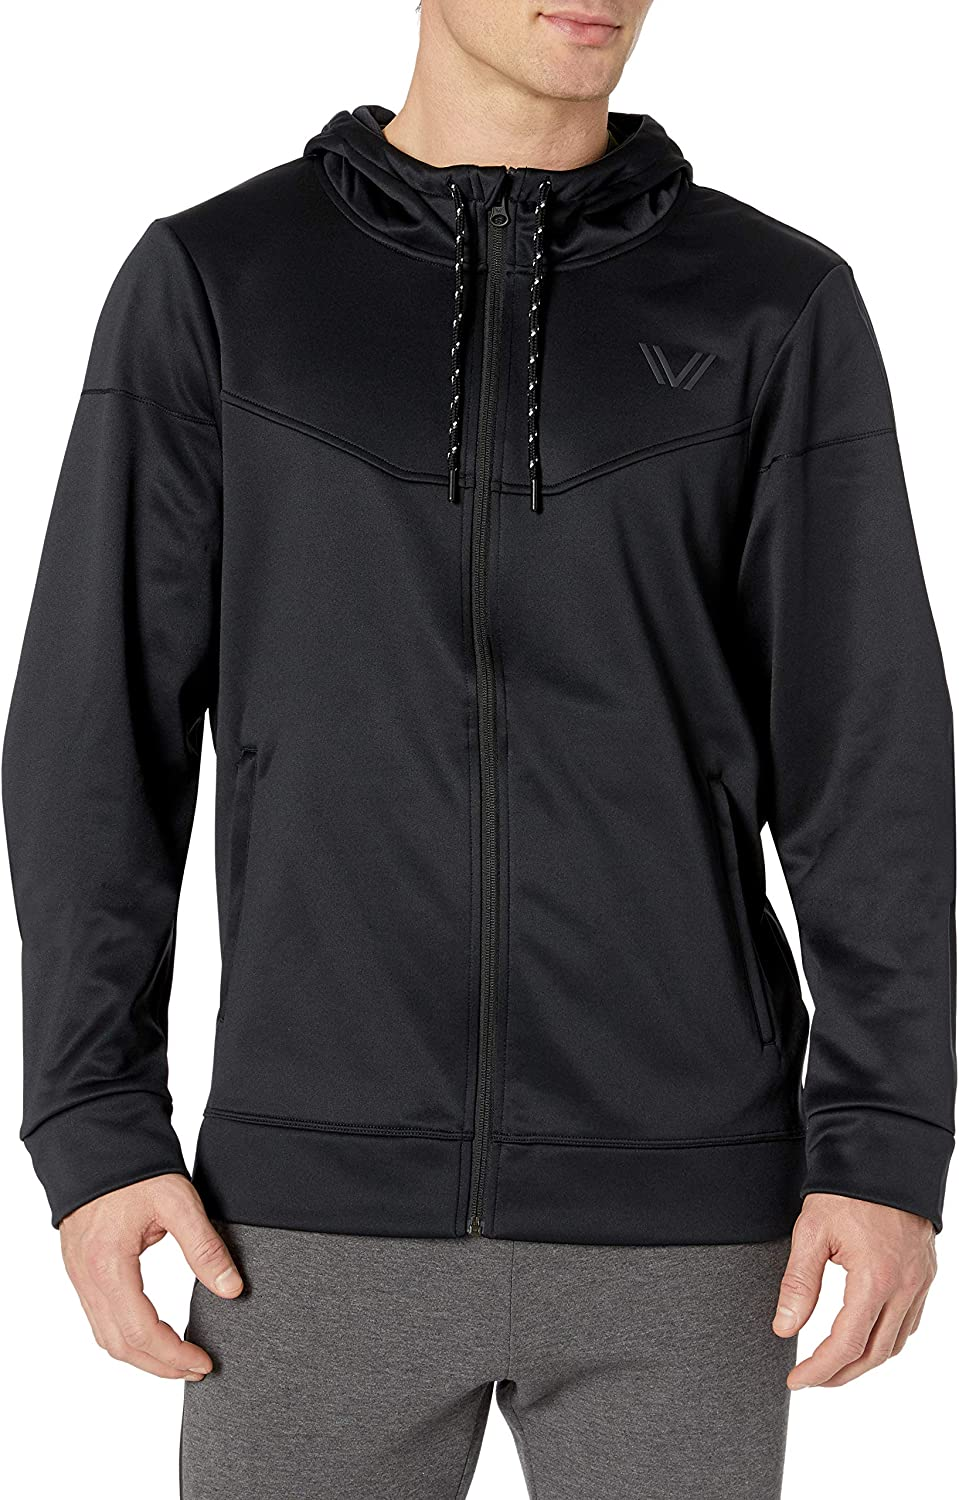 Amazon Brand - Peak Velocity Men's Quantum Fleece Full-Zip Loose-Fit Hoodie